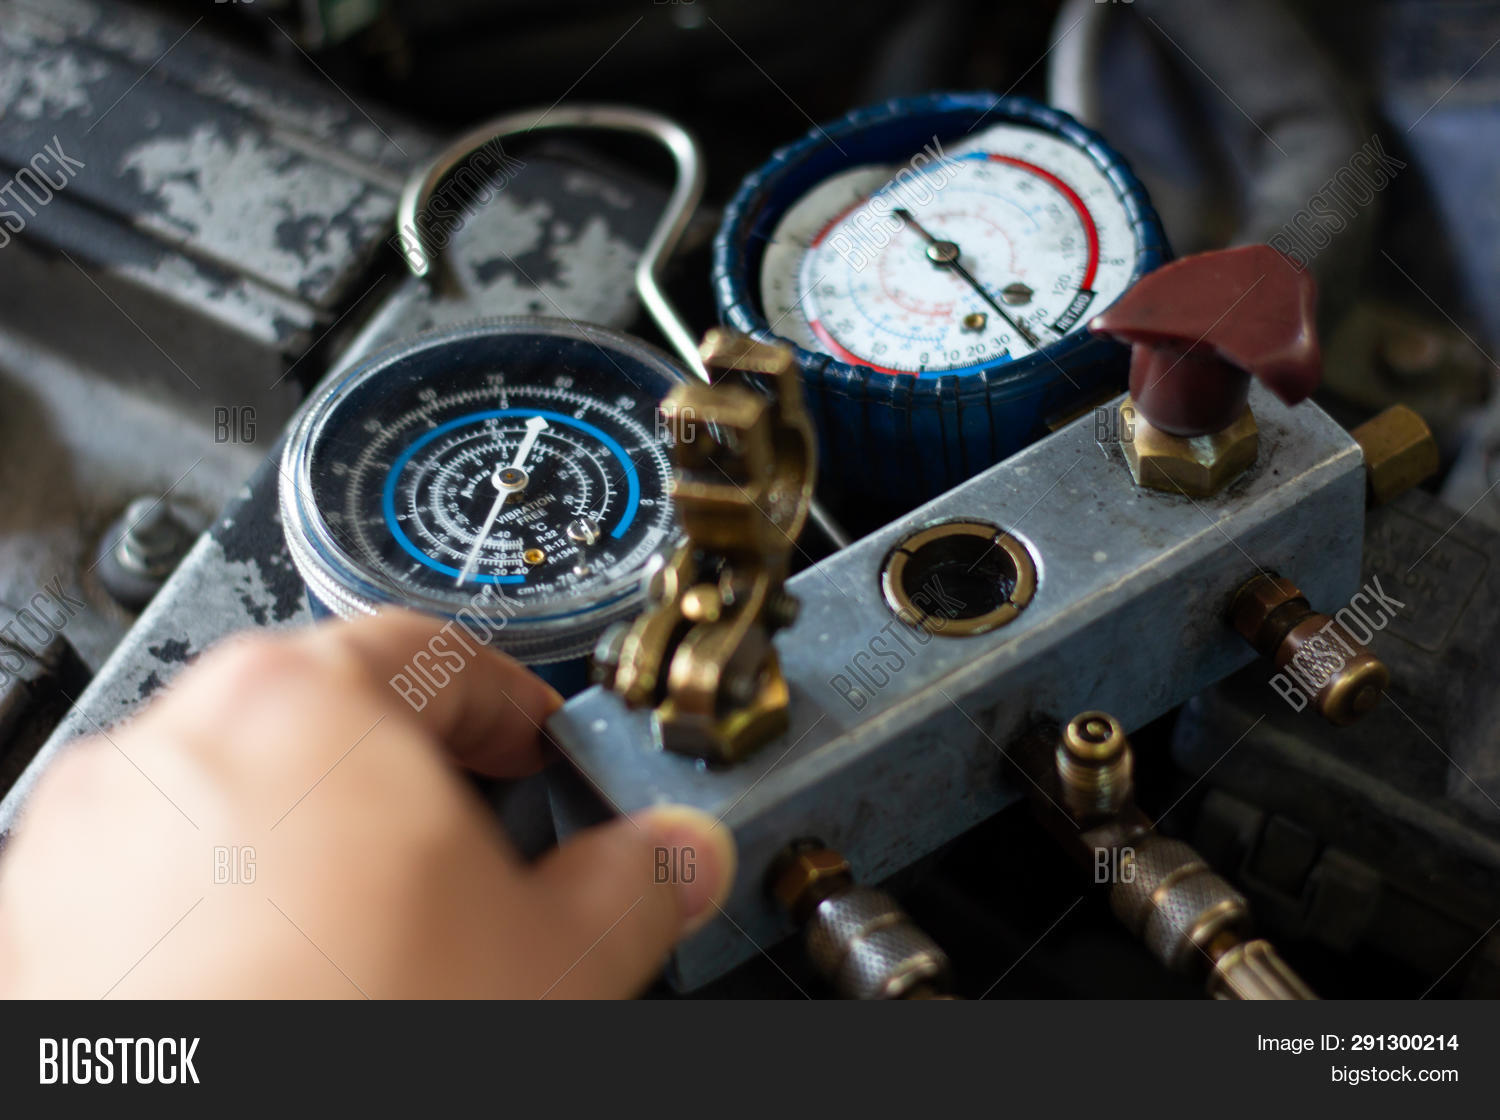 ac,air,auto,automobile,automotive,car,change,check,compressor,conditioner,conditioning,cool,cooler,engine,equipment,filling,filter,fix,freon,gage,garage,gear,indicator,industry,machine,maintenance,mechanic,mechanical,monitoring,parts,pipe,pressure,recharge,refrigerant,refrigeration,repair,service,shop,spare,station,system,technical,technician,tool,tube,unit,vehicle,work,worker,workshop